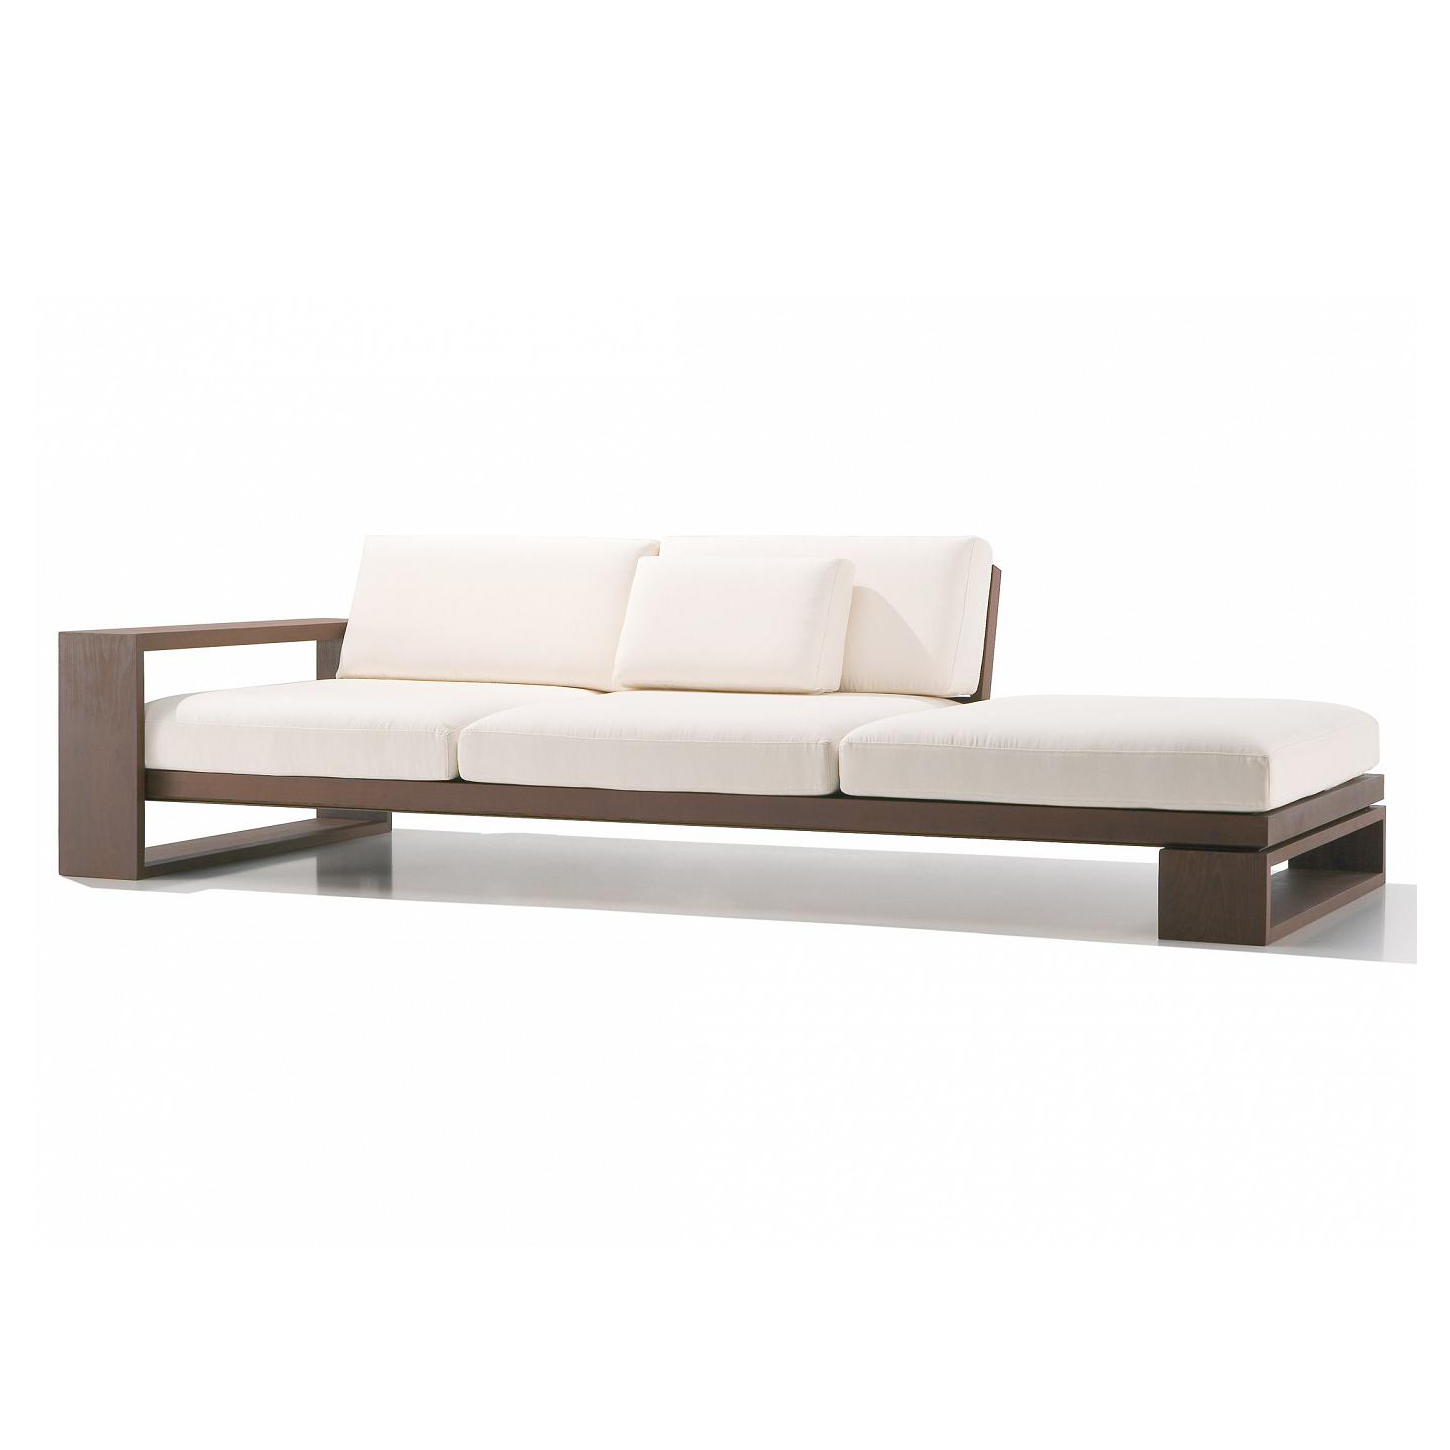 Modern White Sofa Design Ws 39 Details Bic Furniture India